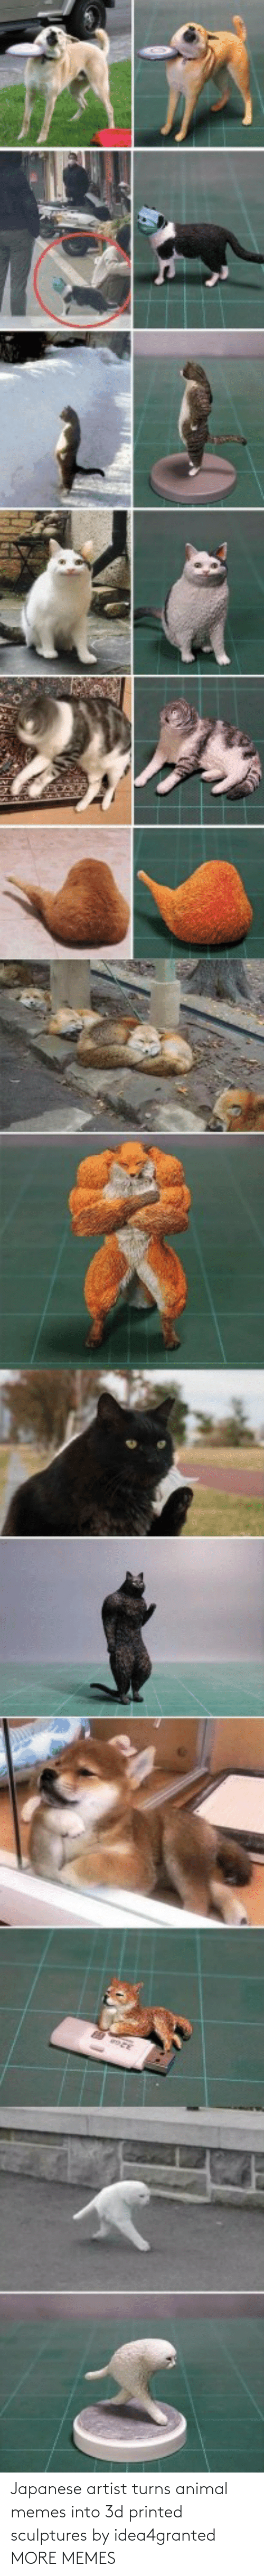 Japanese: Japanese artist turns animal memes into 3d printed sculptures by idea4granted MORE MEMES